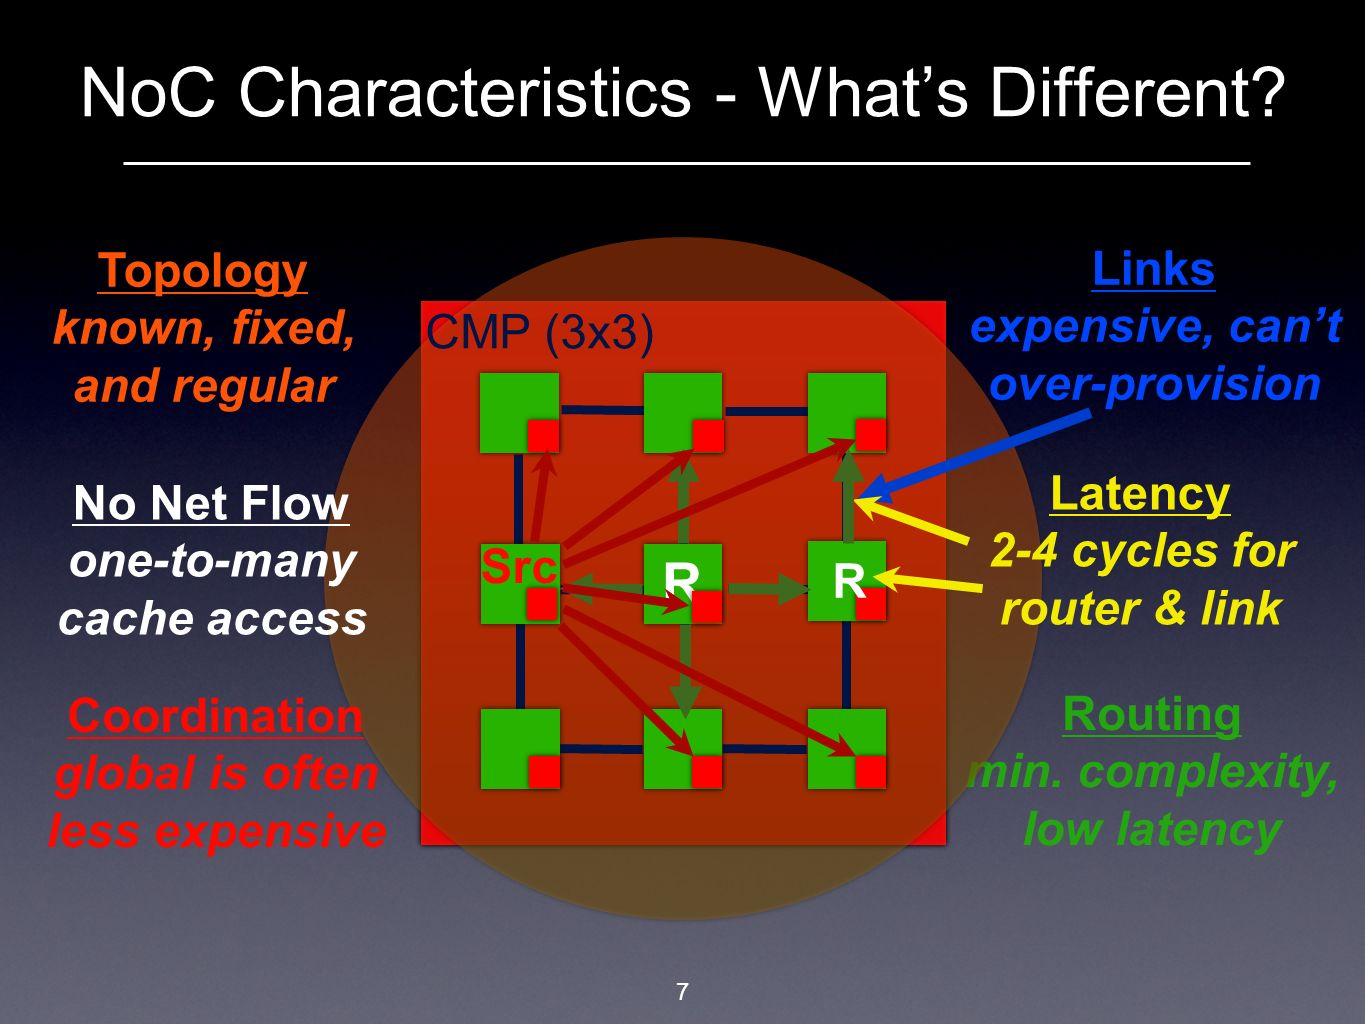 NoC Characteristics - What's Different